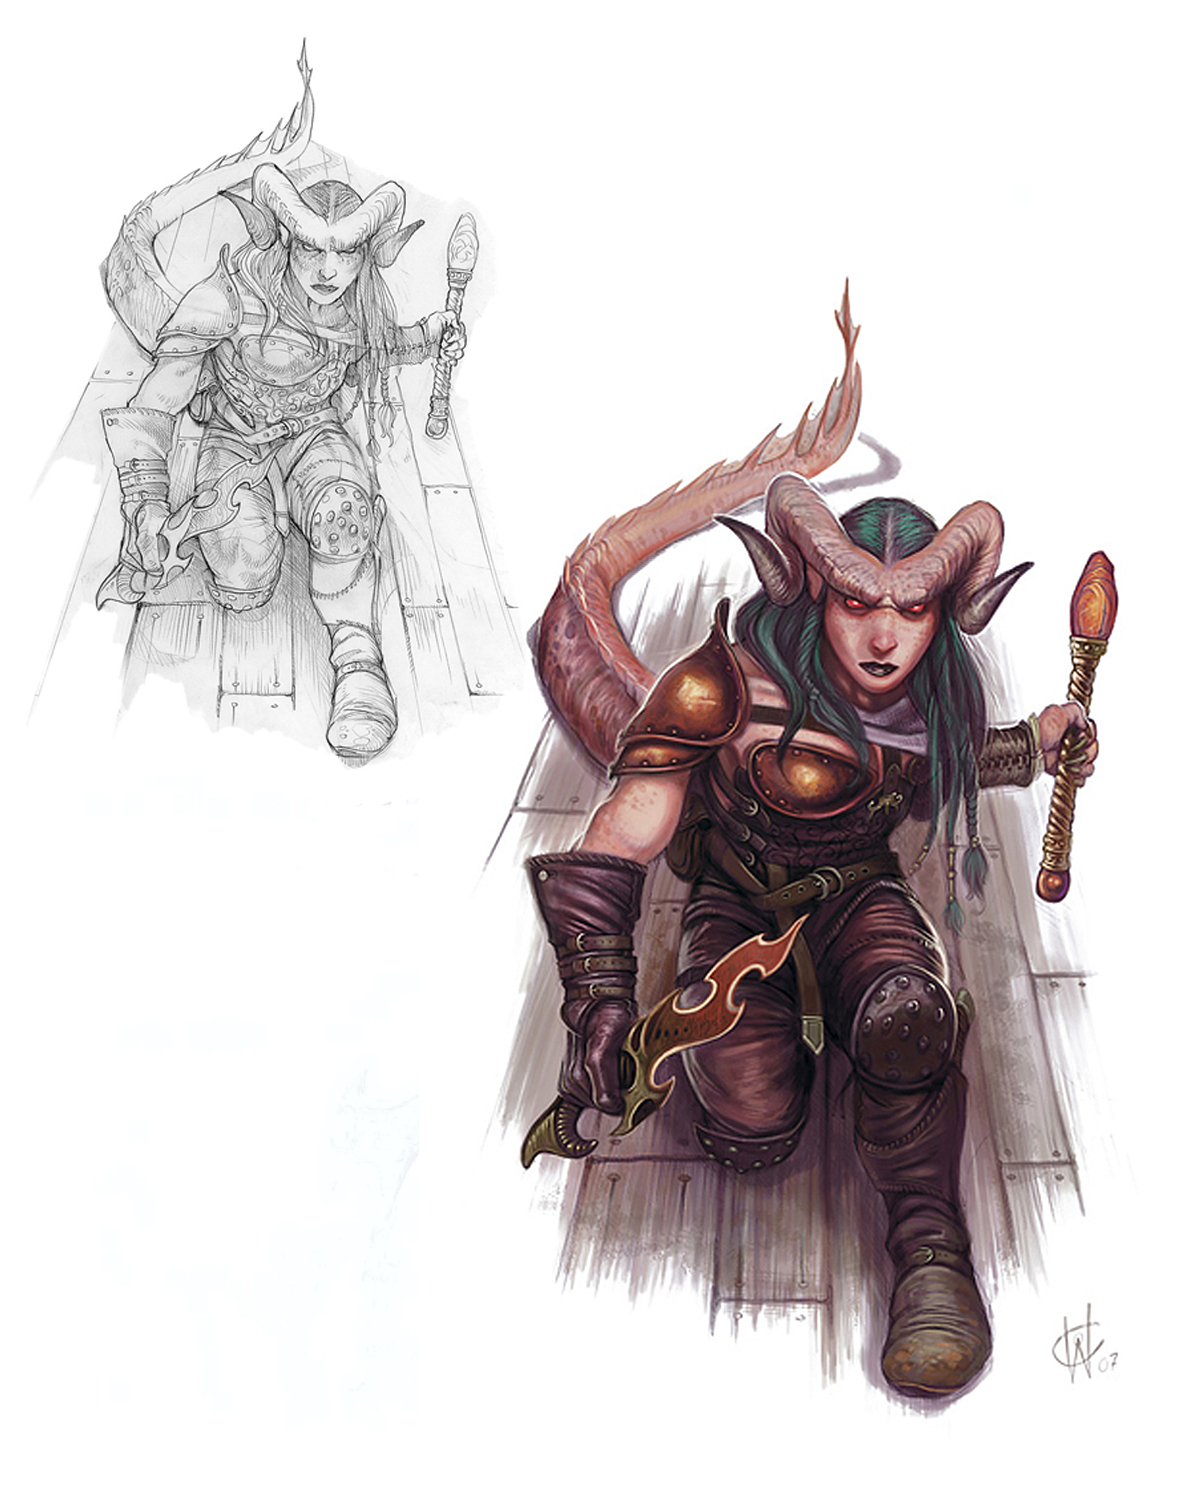 {$tags} Tiefling warlock, schizzo e lavoro ultimato - by William O'Connor Wizards Present, Races and Classes (2007-12) © Wizards of the Coast & Hasbro